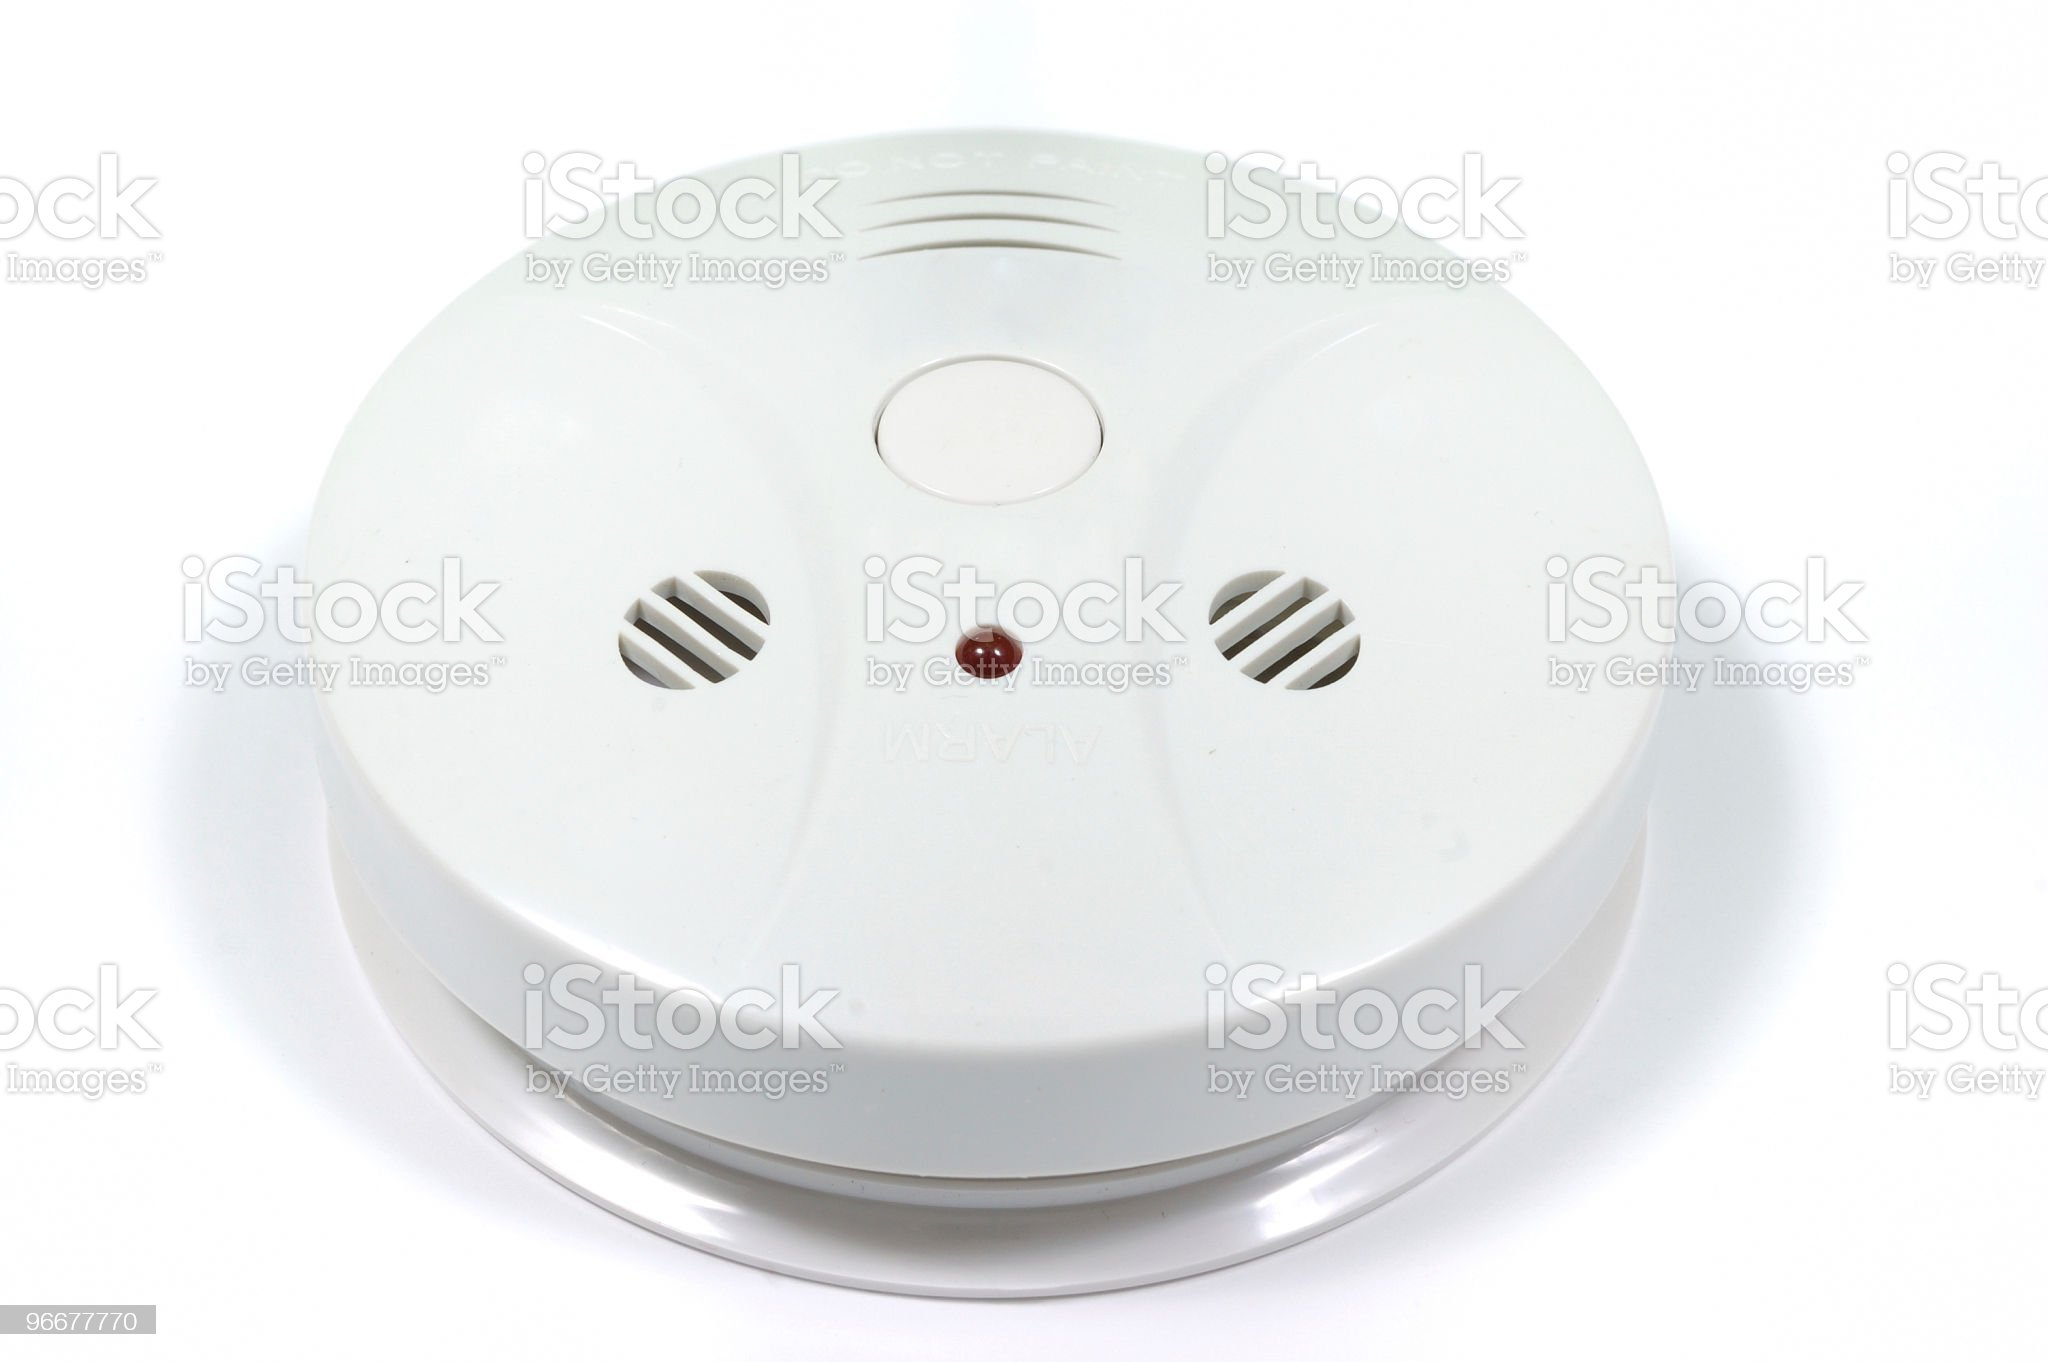 Smoke and fire detector royalty-free stock photo